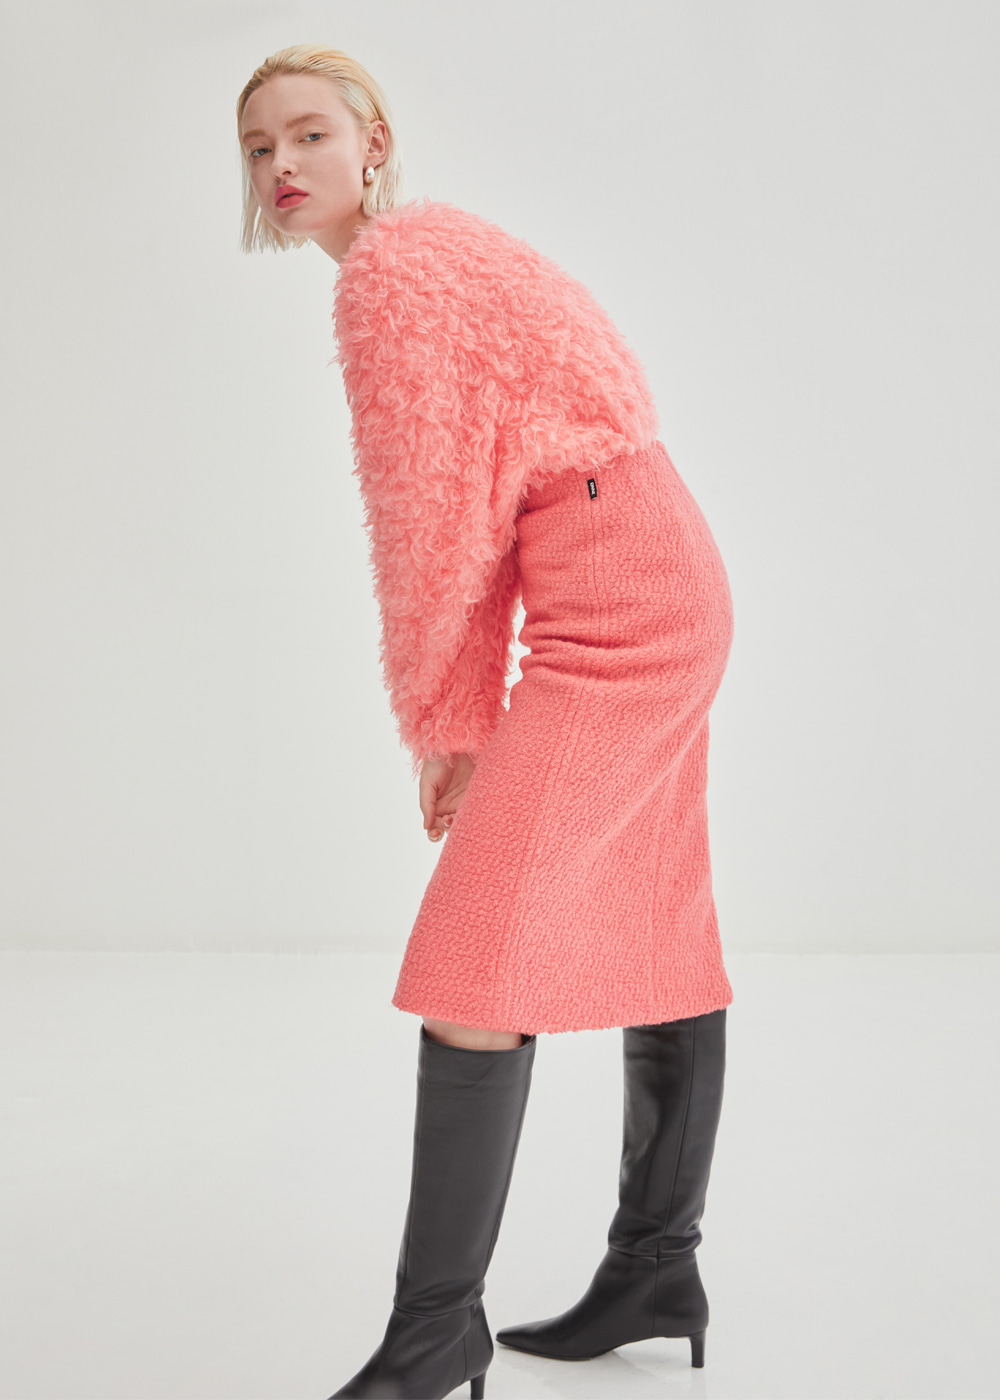 Stitched Wool Tweed Midi Skirt - Pink